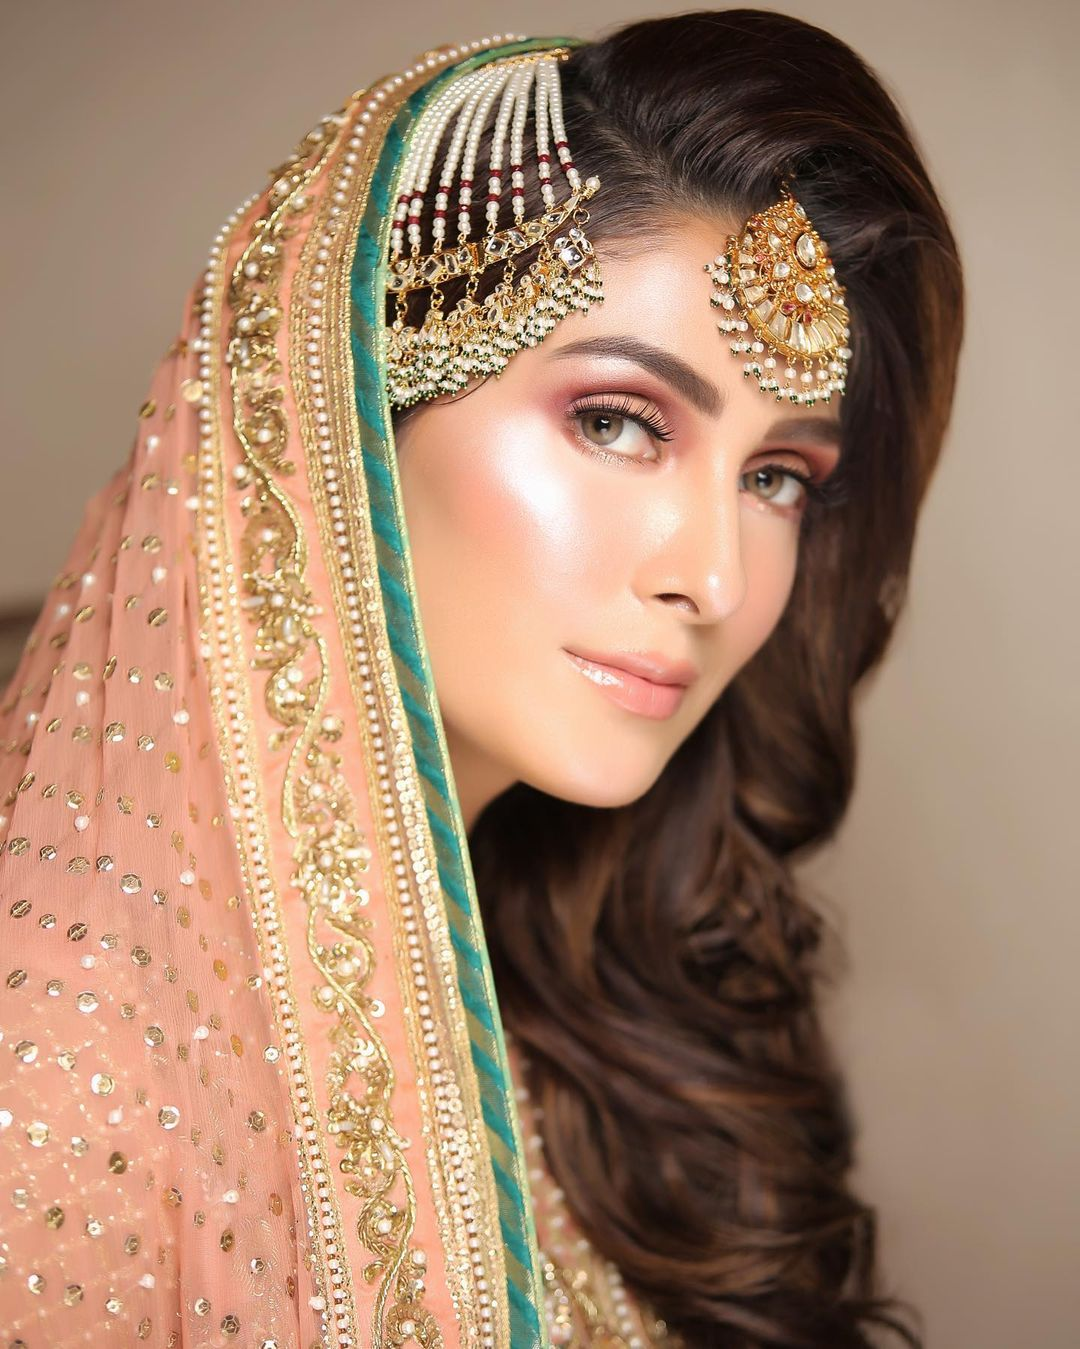 Ayeza Khan Beautiful Bridal Make Up Shoot for Zaras Salon